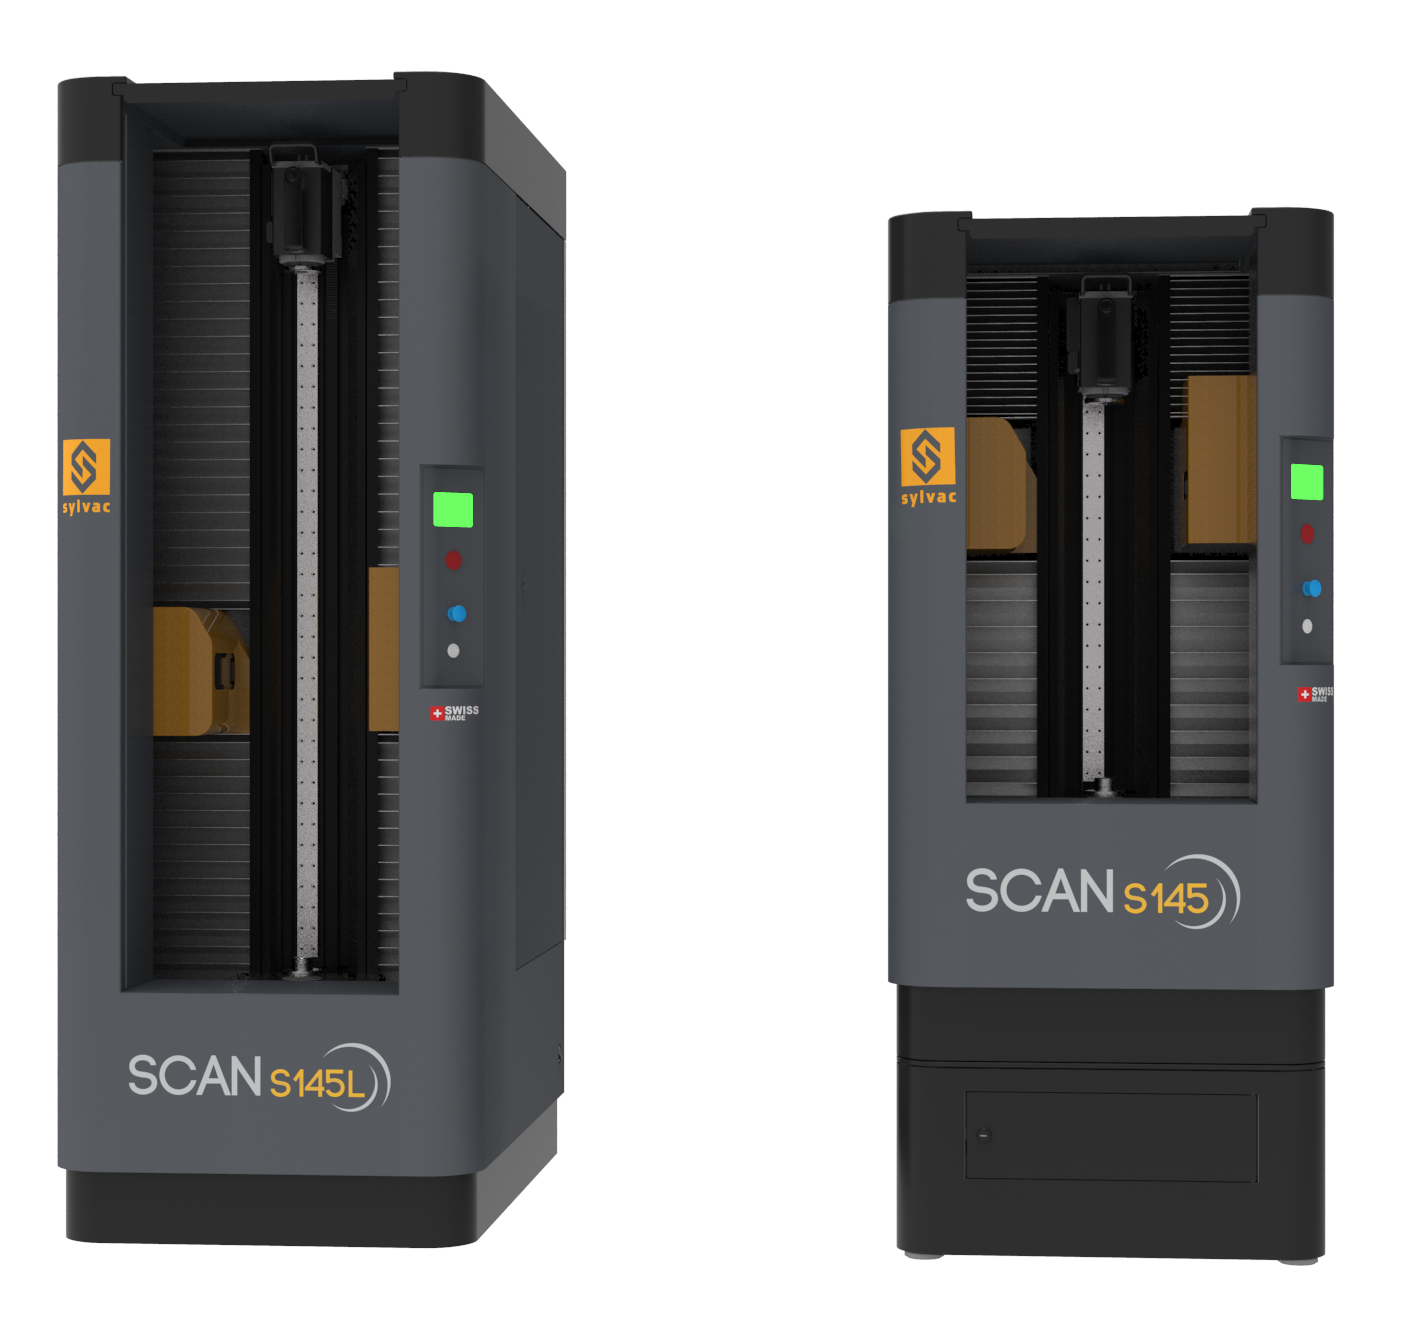 Sylvac Scan S145 and S145L